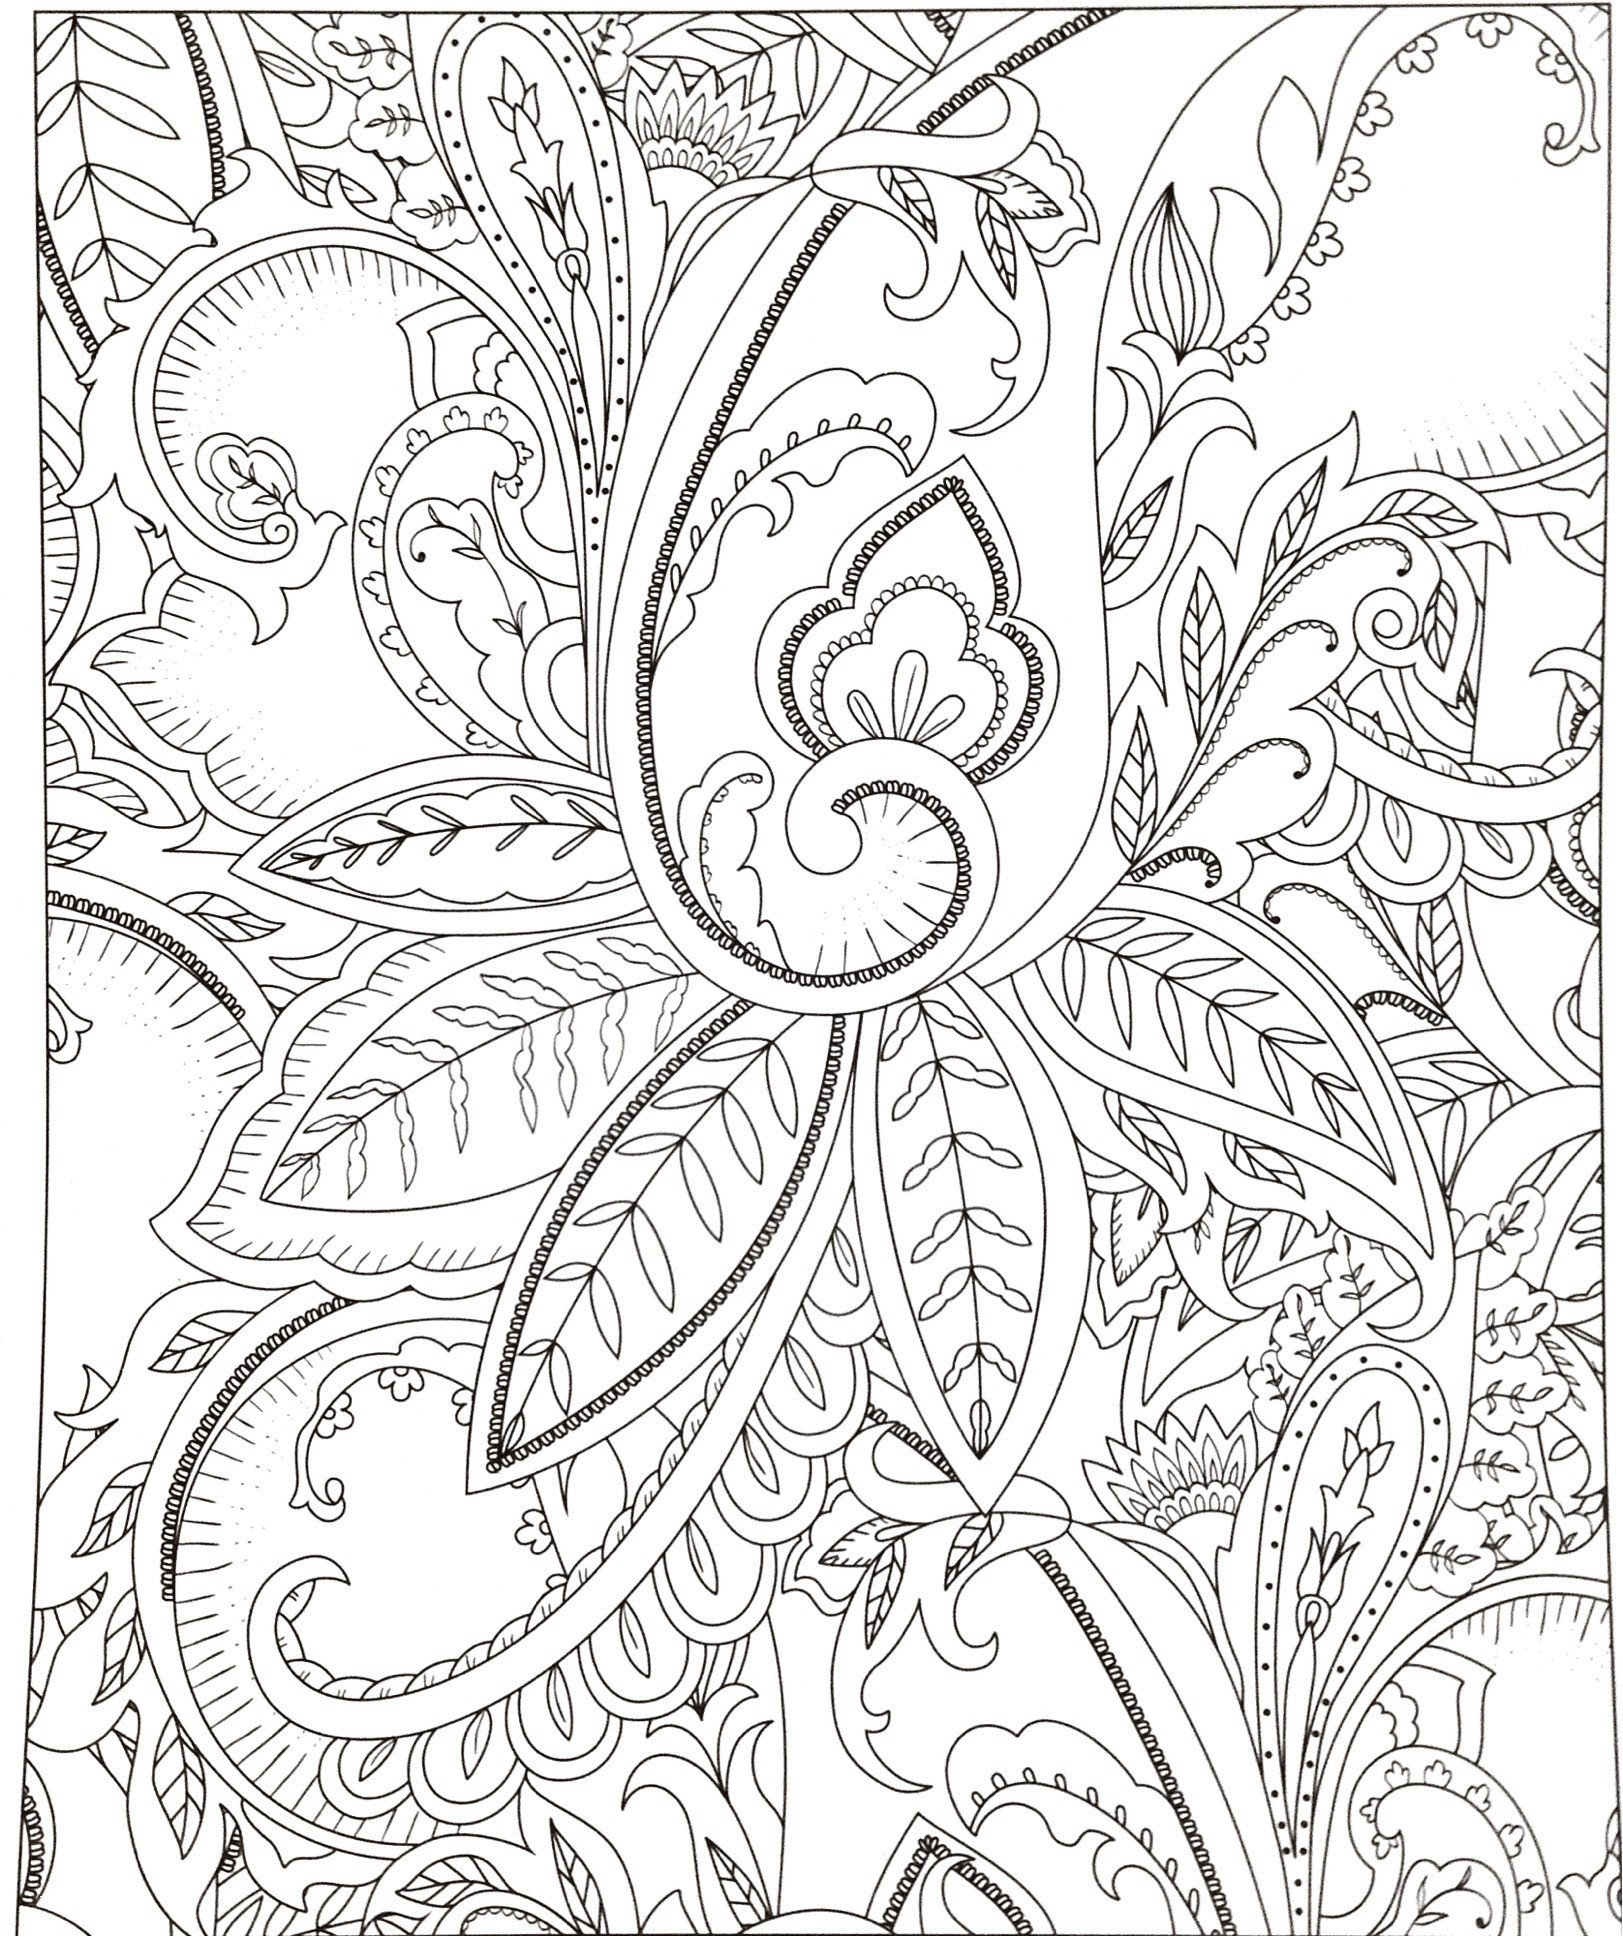 saltwater fish coloring pages Download-Tropical Fish Under The Sea Coloring Pages · Best Fresh S S Media Cache Ak0 Pinimg originals 17-e